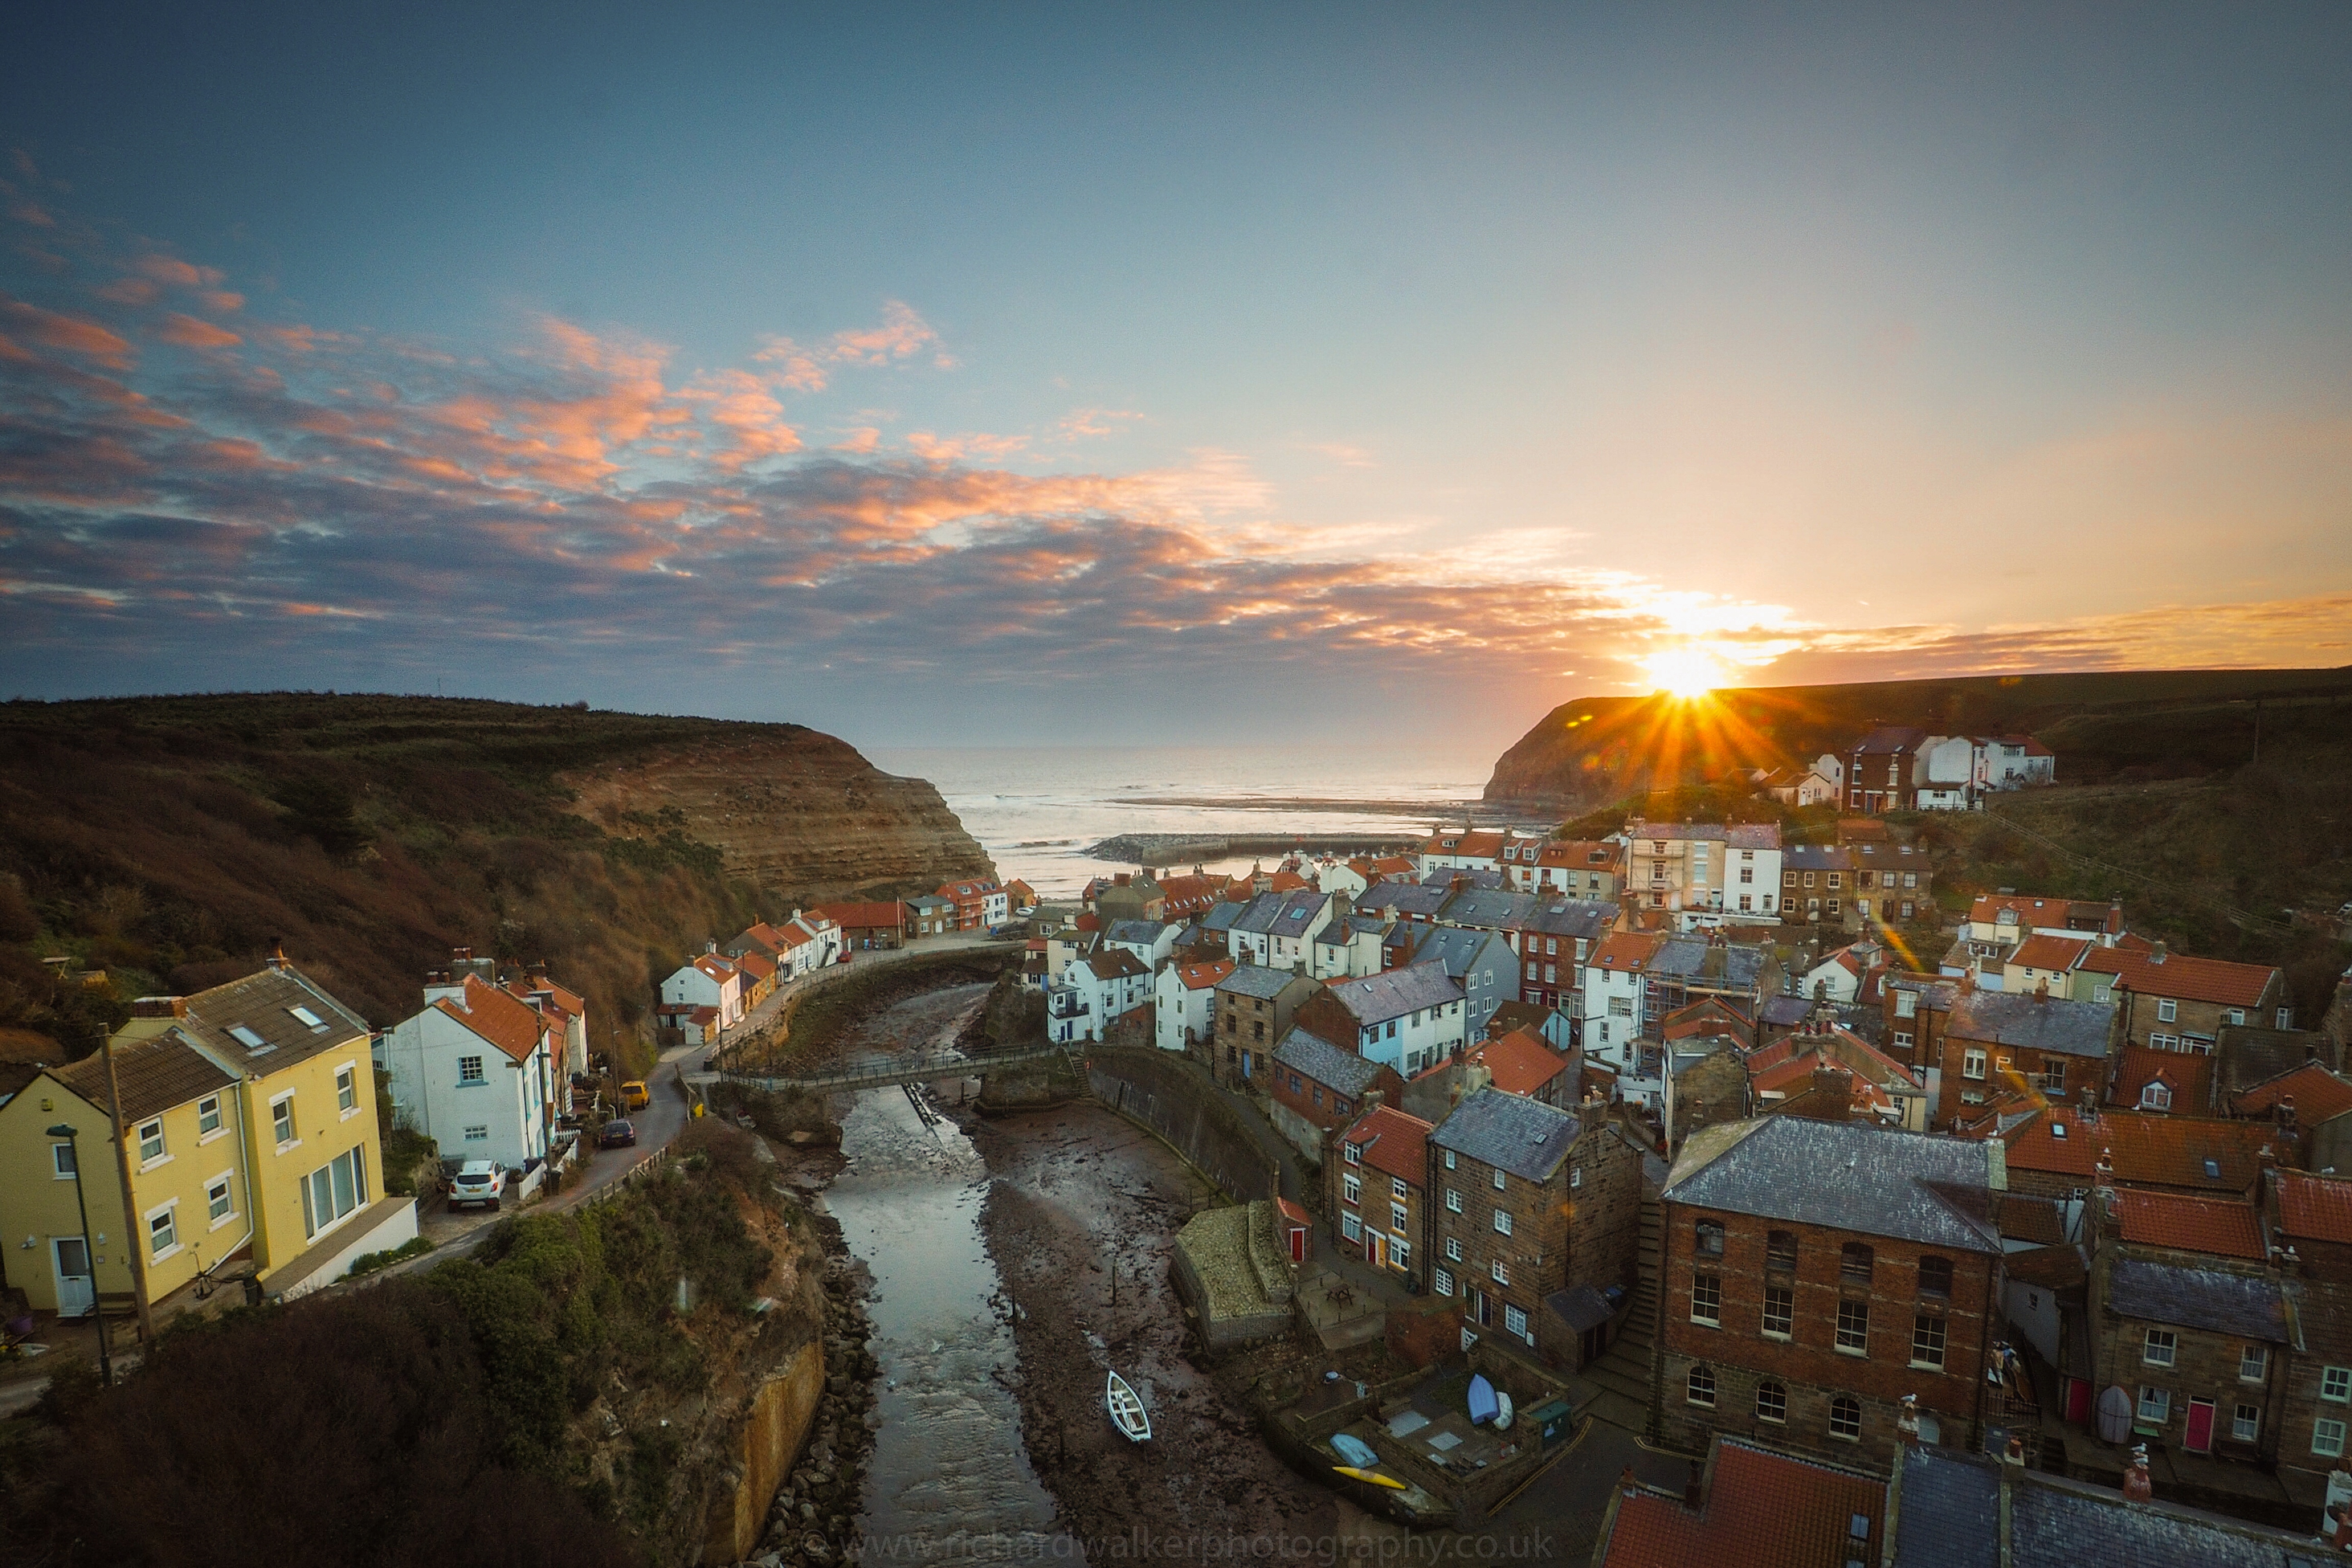 The sun rises over the seaside village of Staithes in North Yorkshire